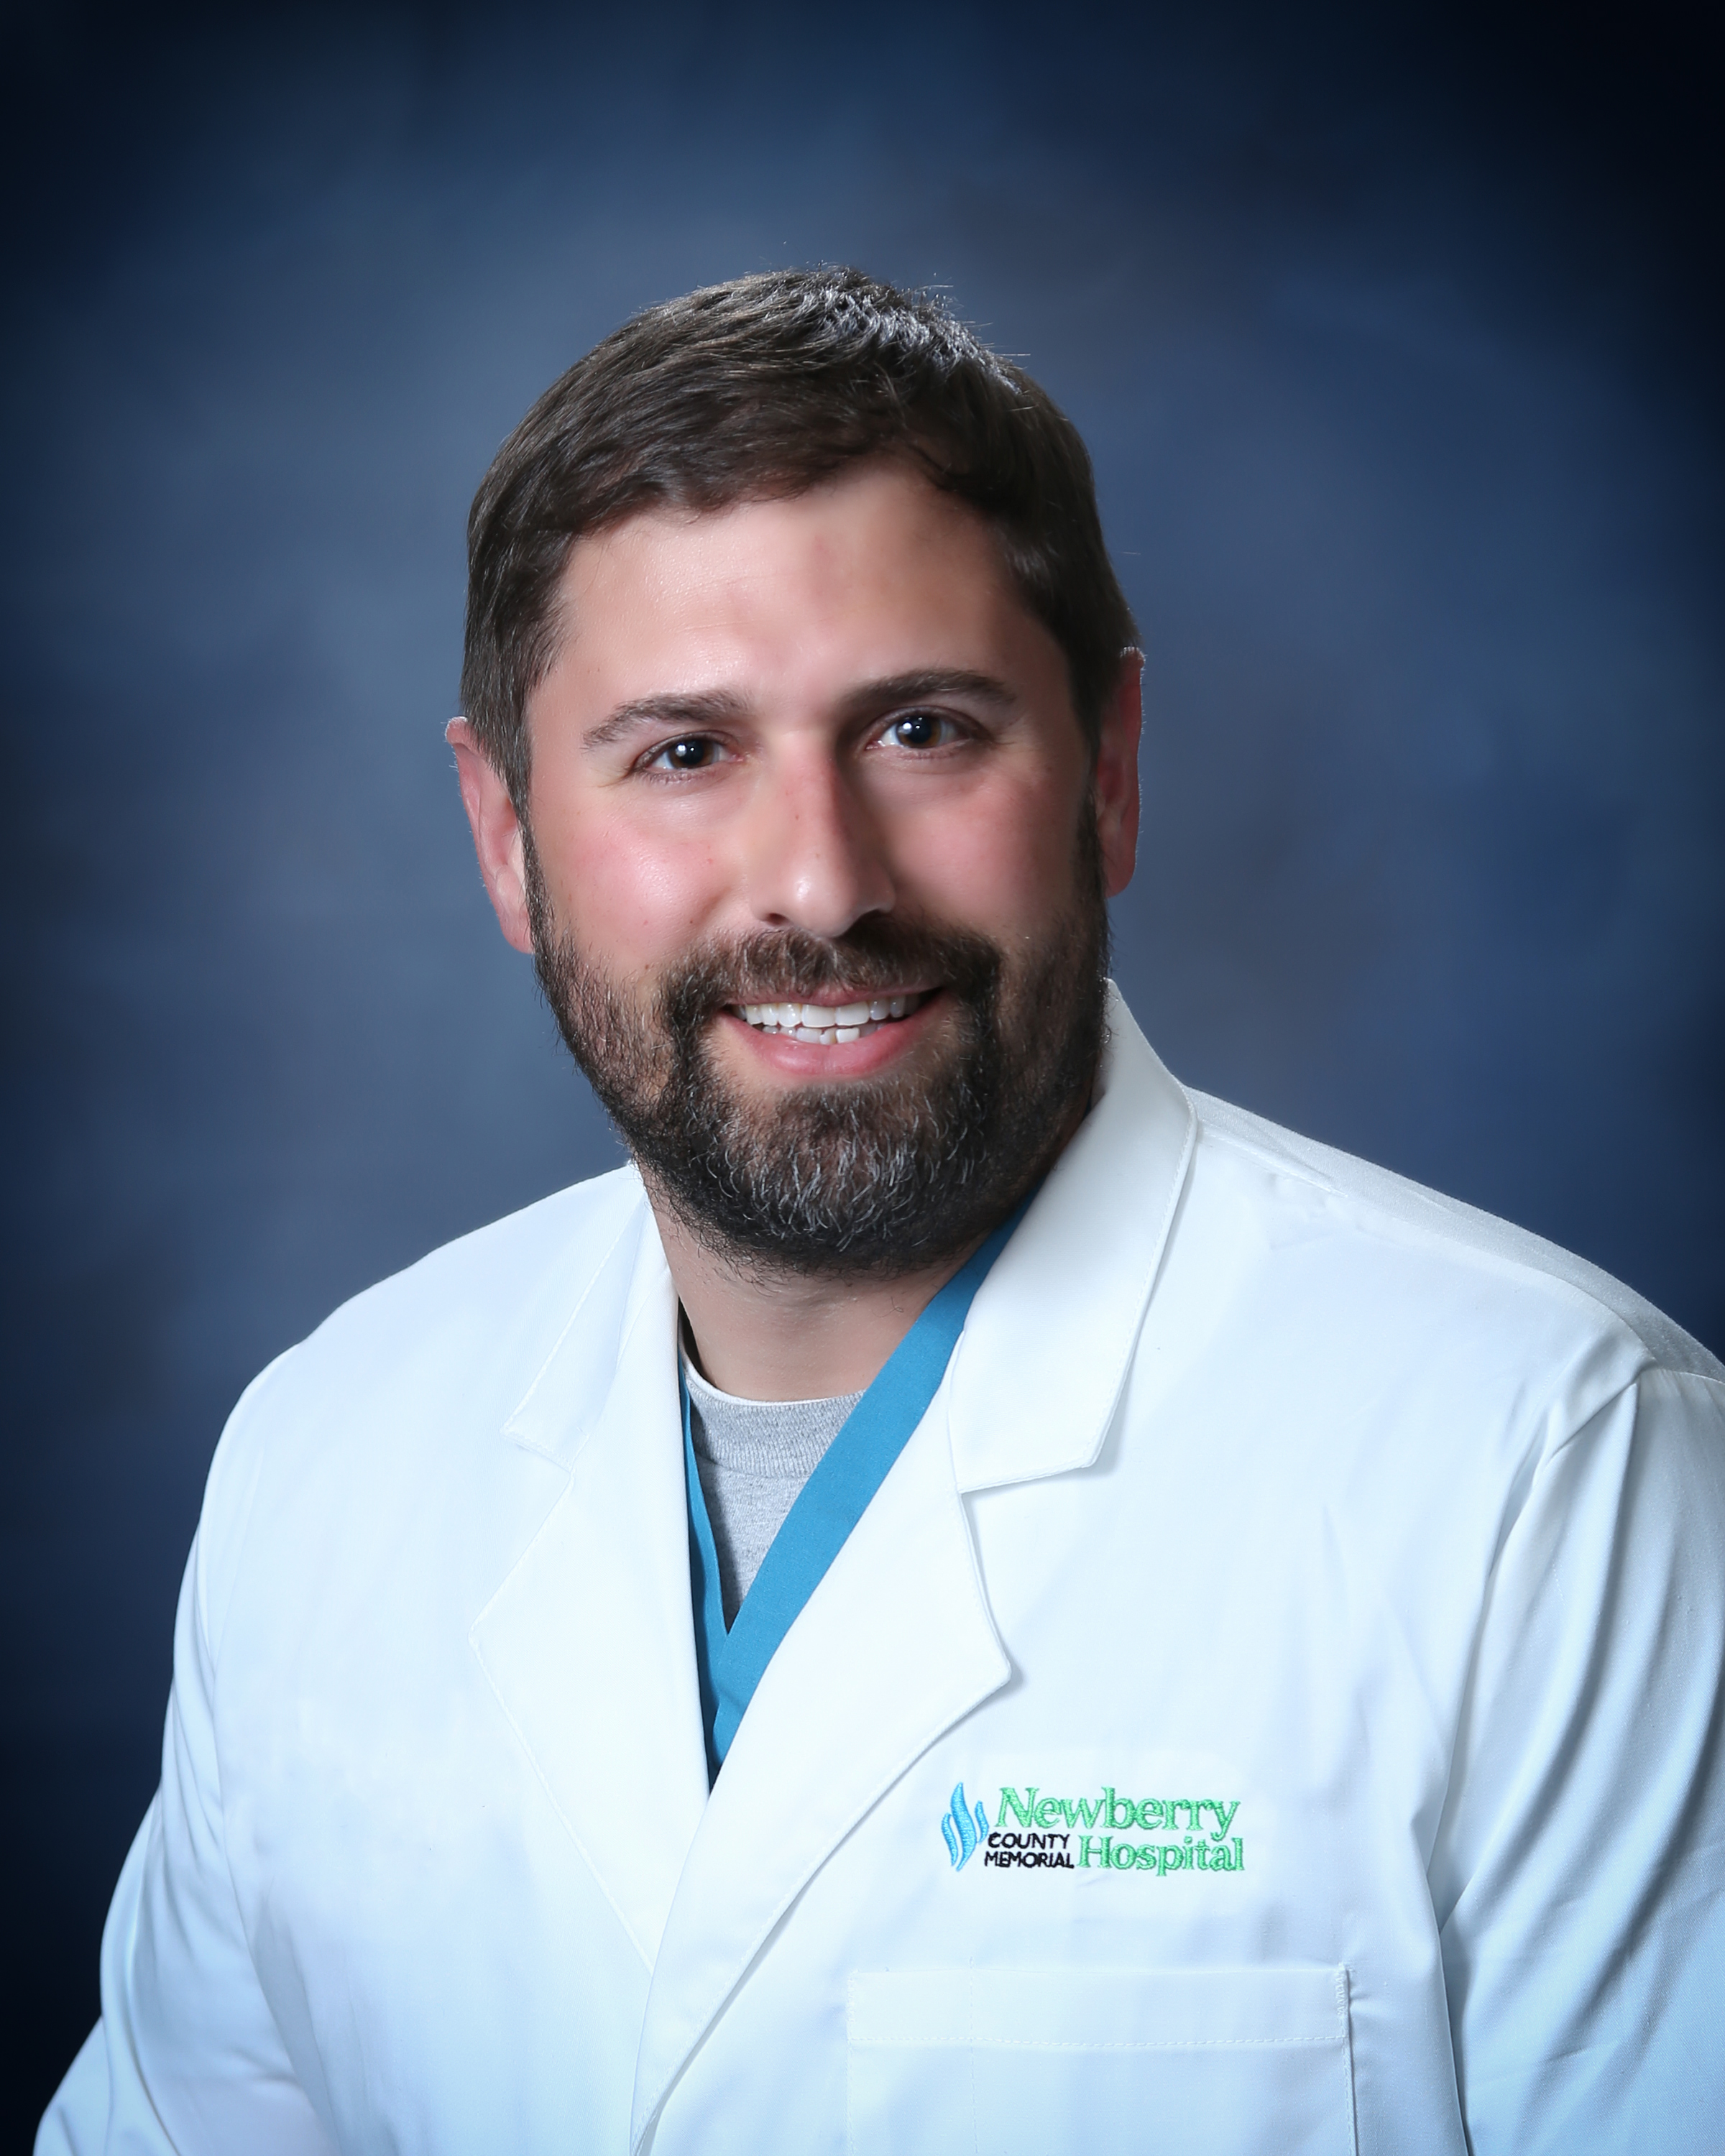 Bearded Dr. In Lab Coat Smiling